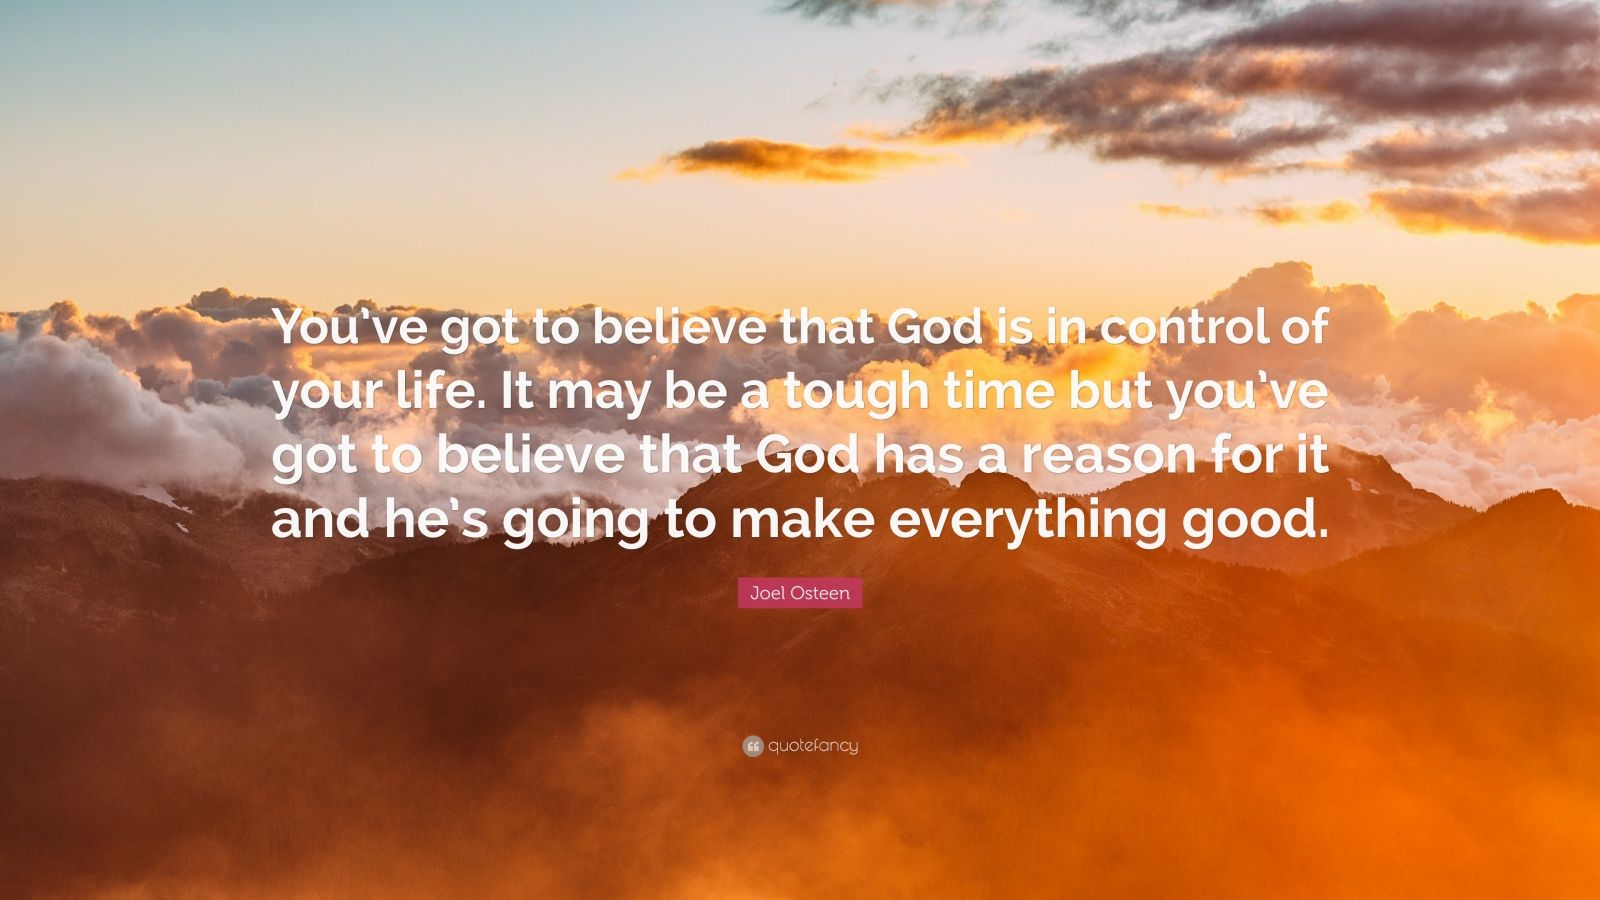 """Joel Osteen Quote: """"You've got to believe that God is in control of your life. It may be a tough time but you've got to believe that God has a reason for it and he's going to make everything good."""""""